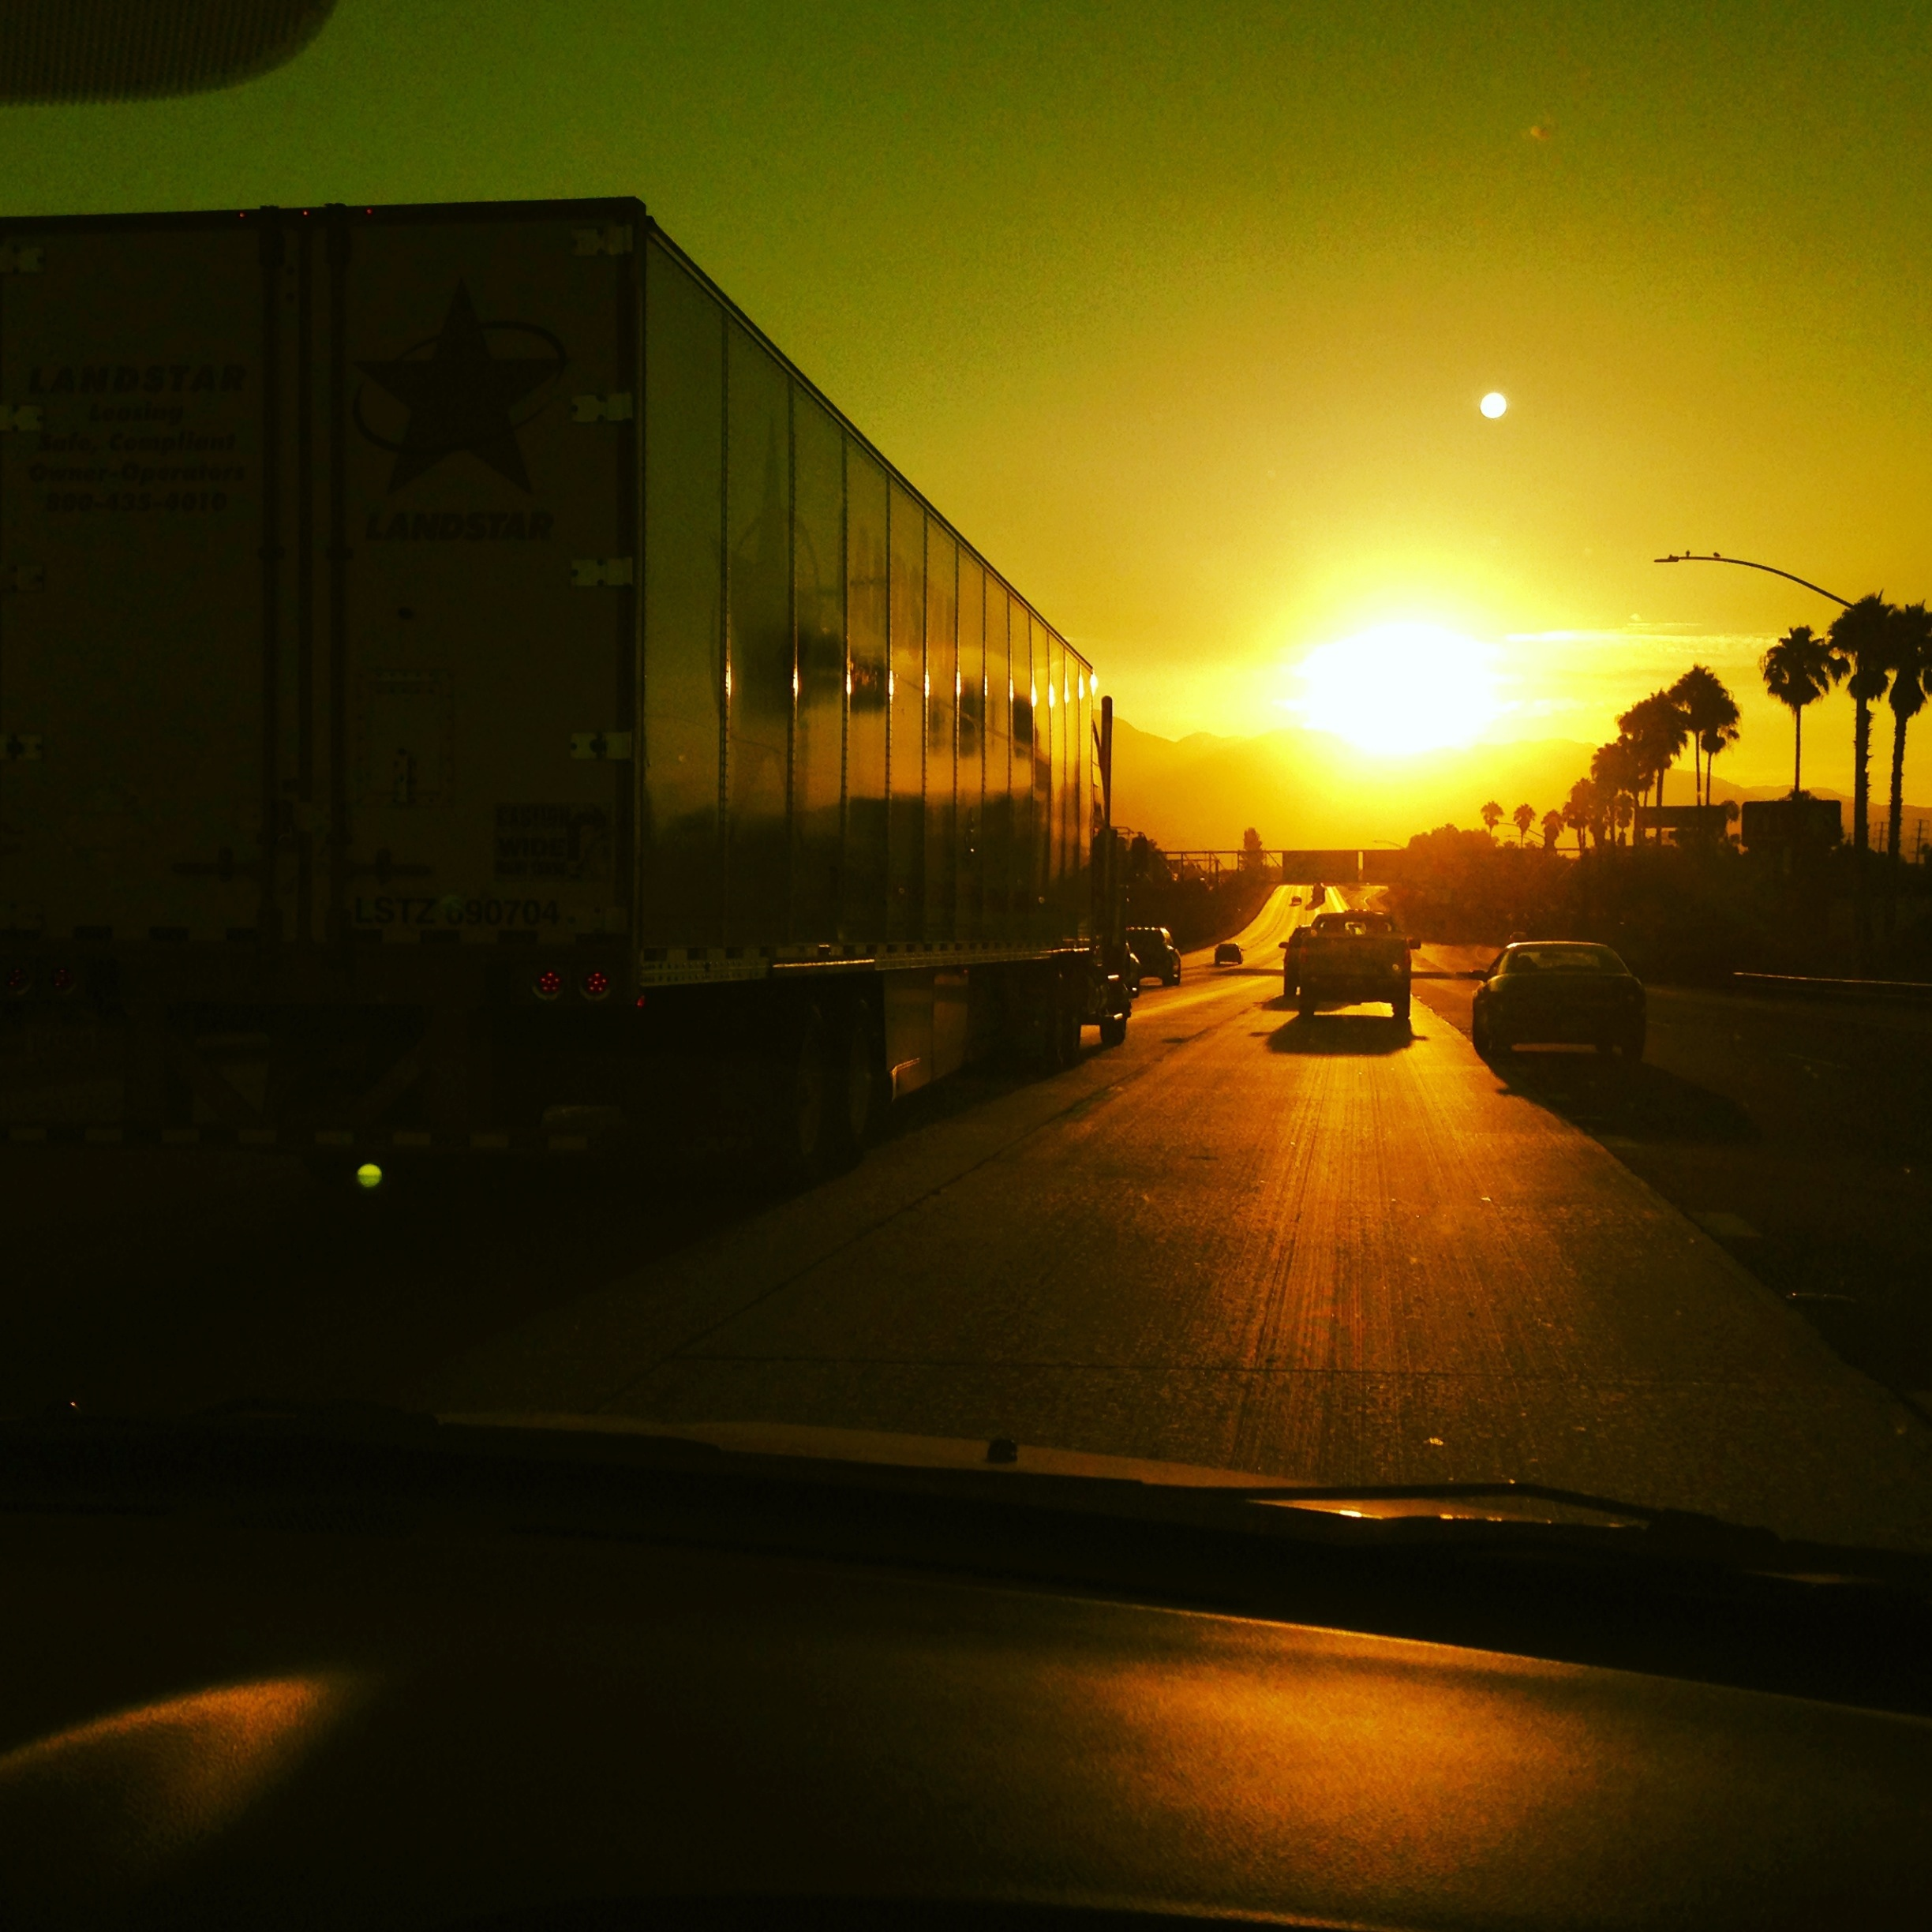 Morning Sun on the Highway